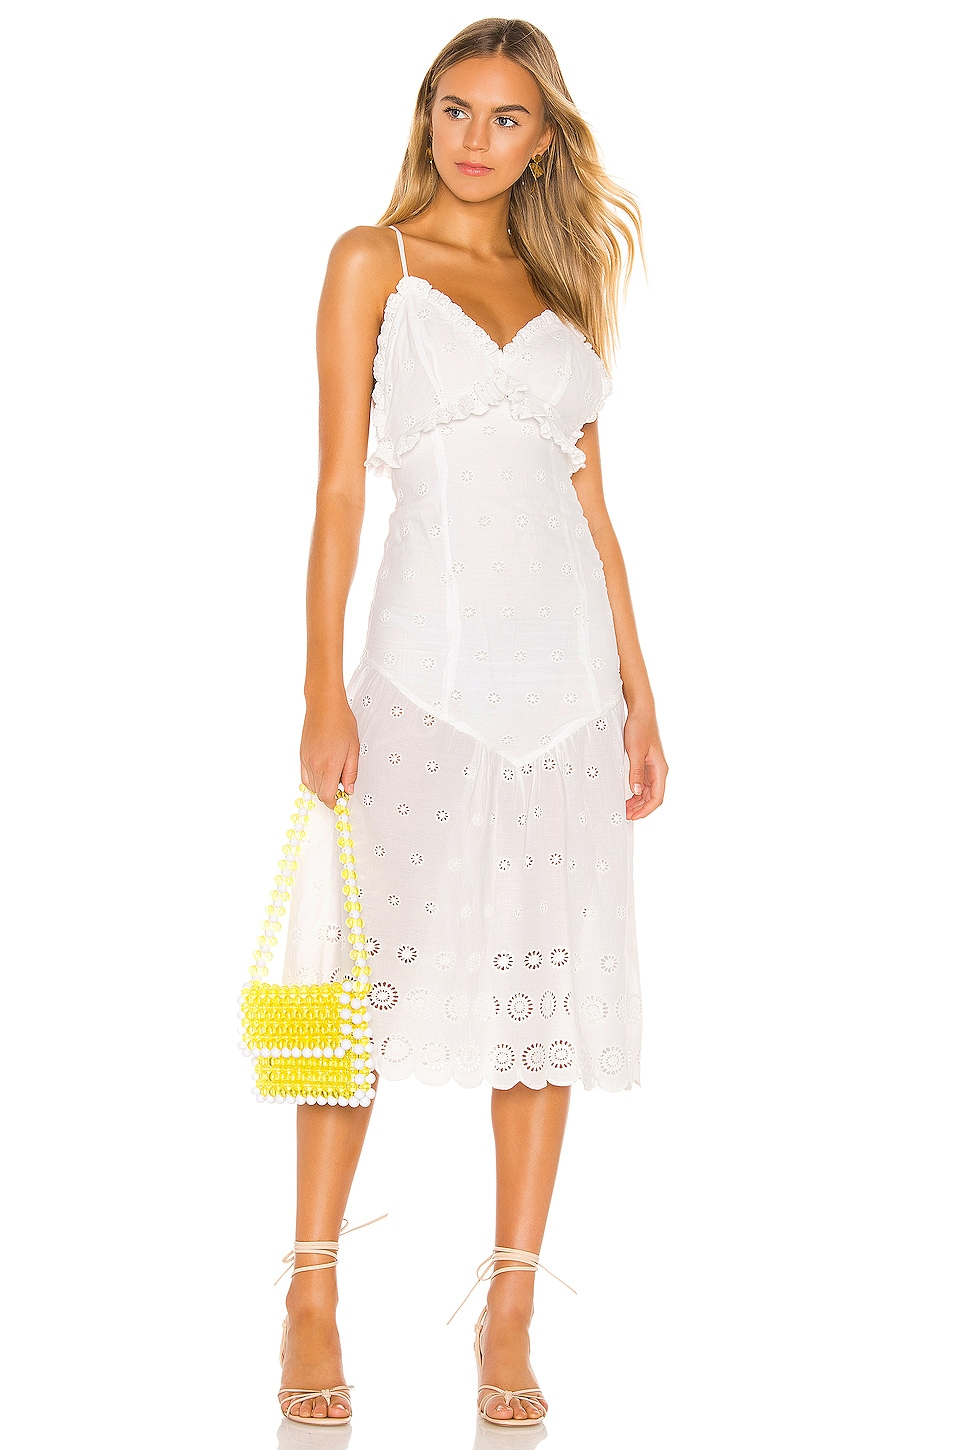 MAJORELLE Isla Midi Dress in White